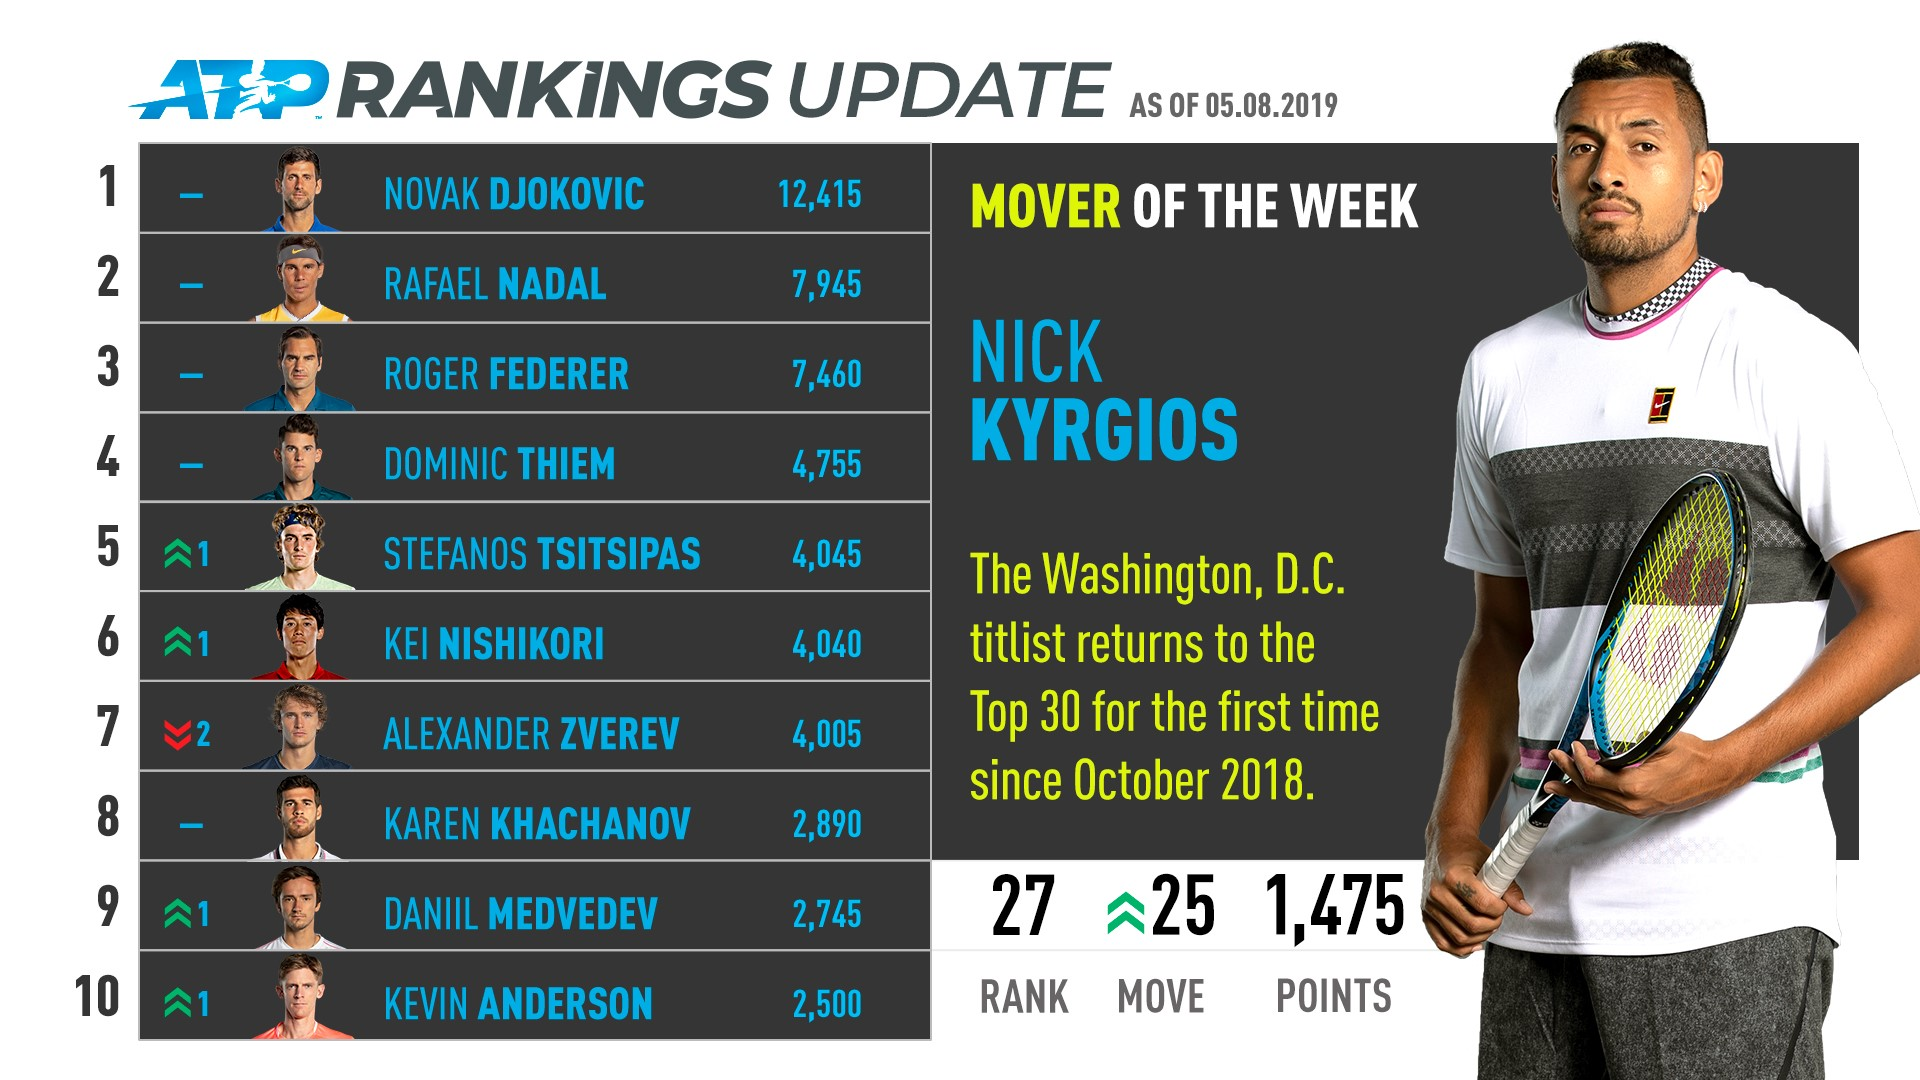 Kyrgios, Washington, D.C.